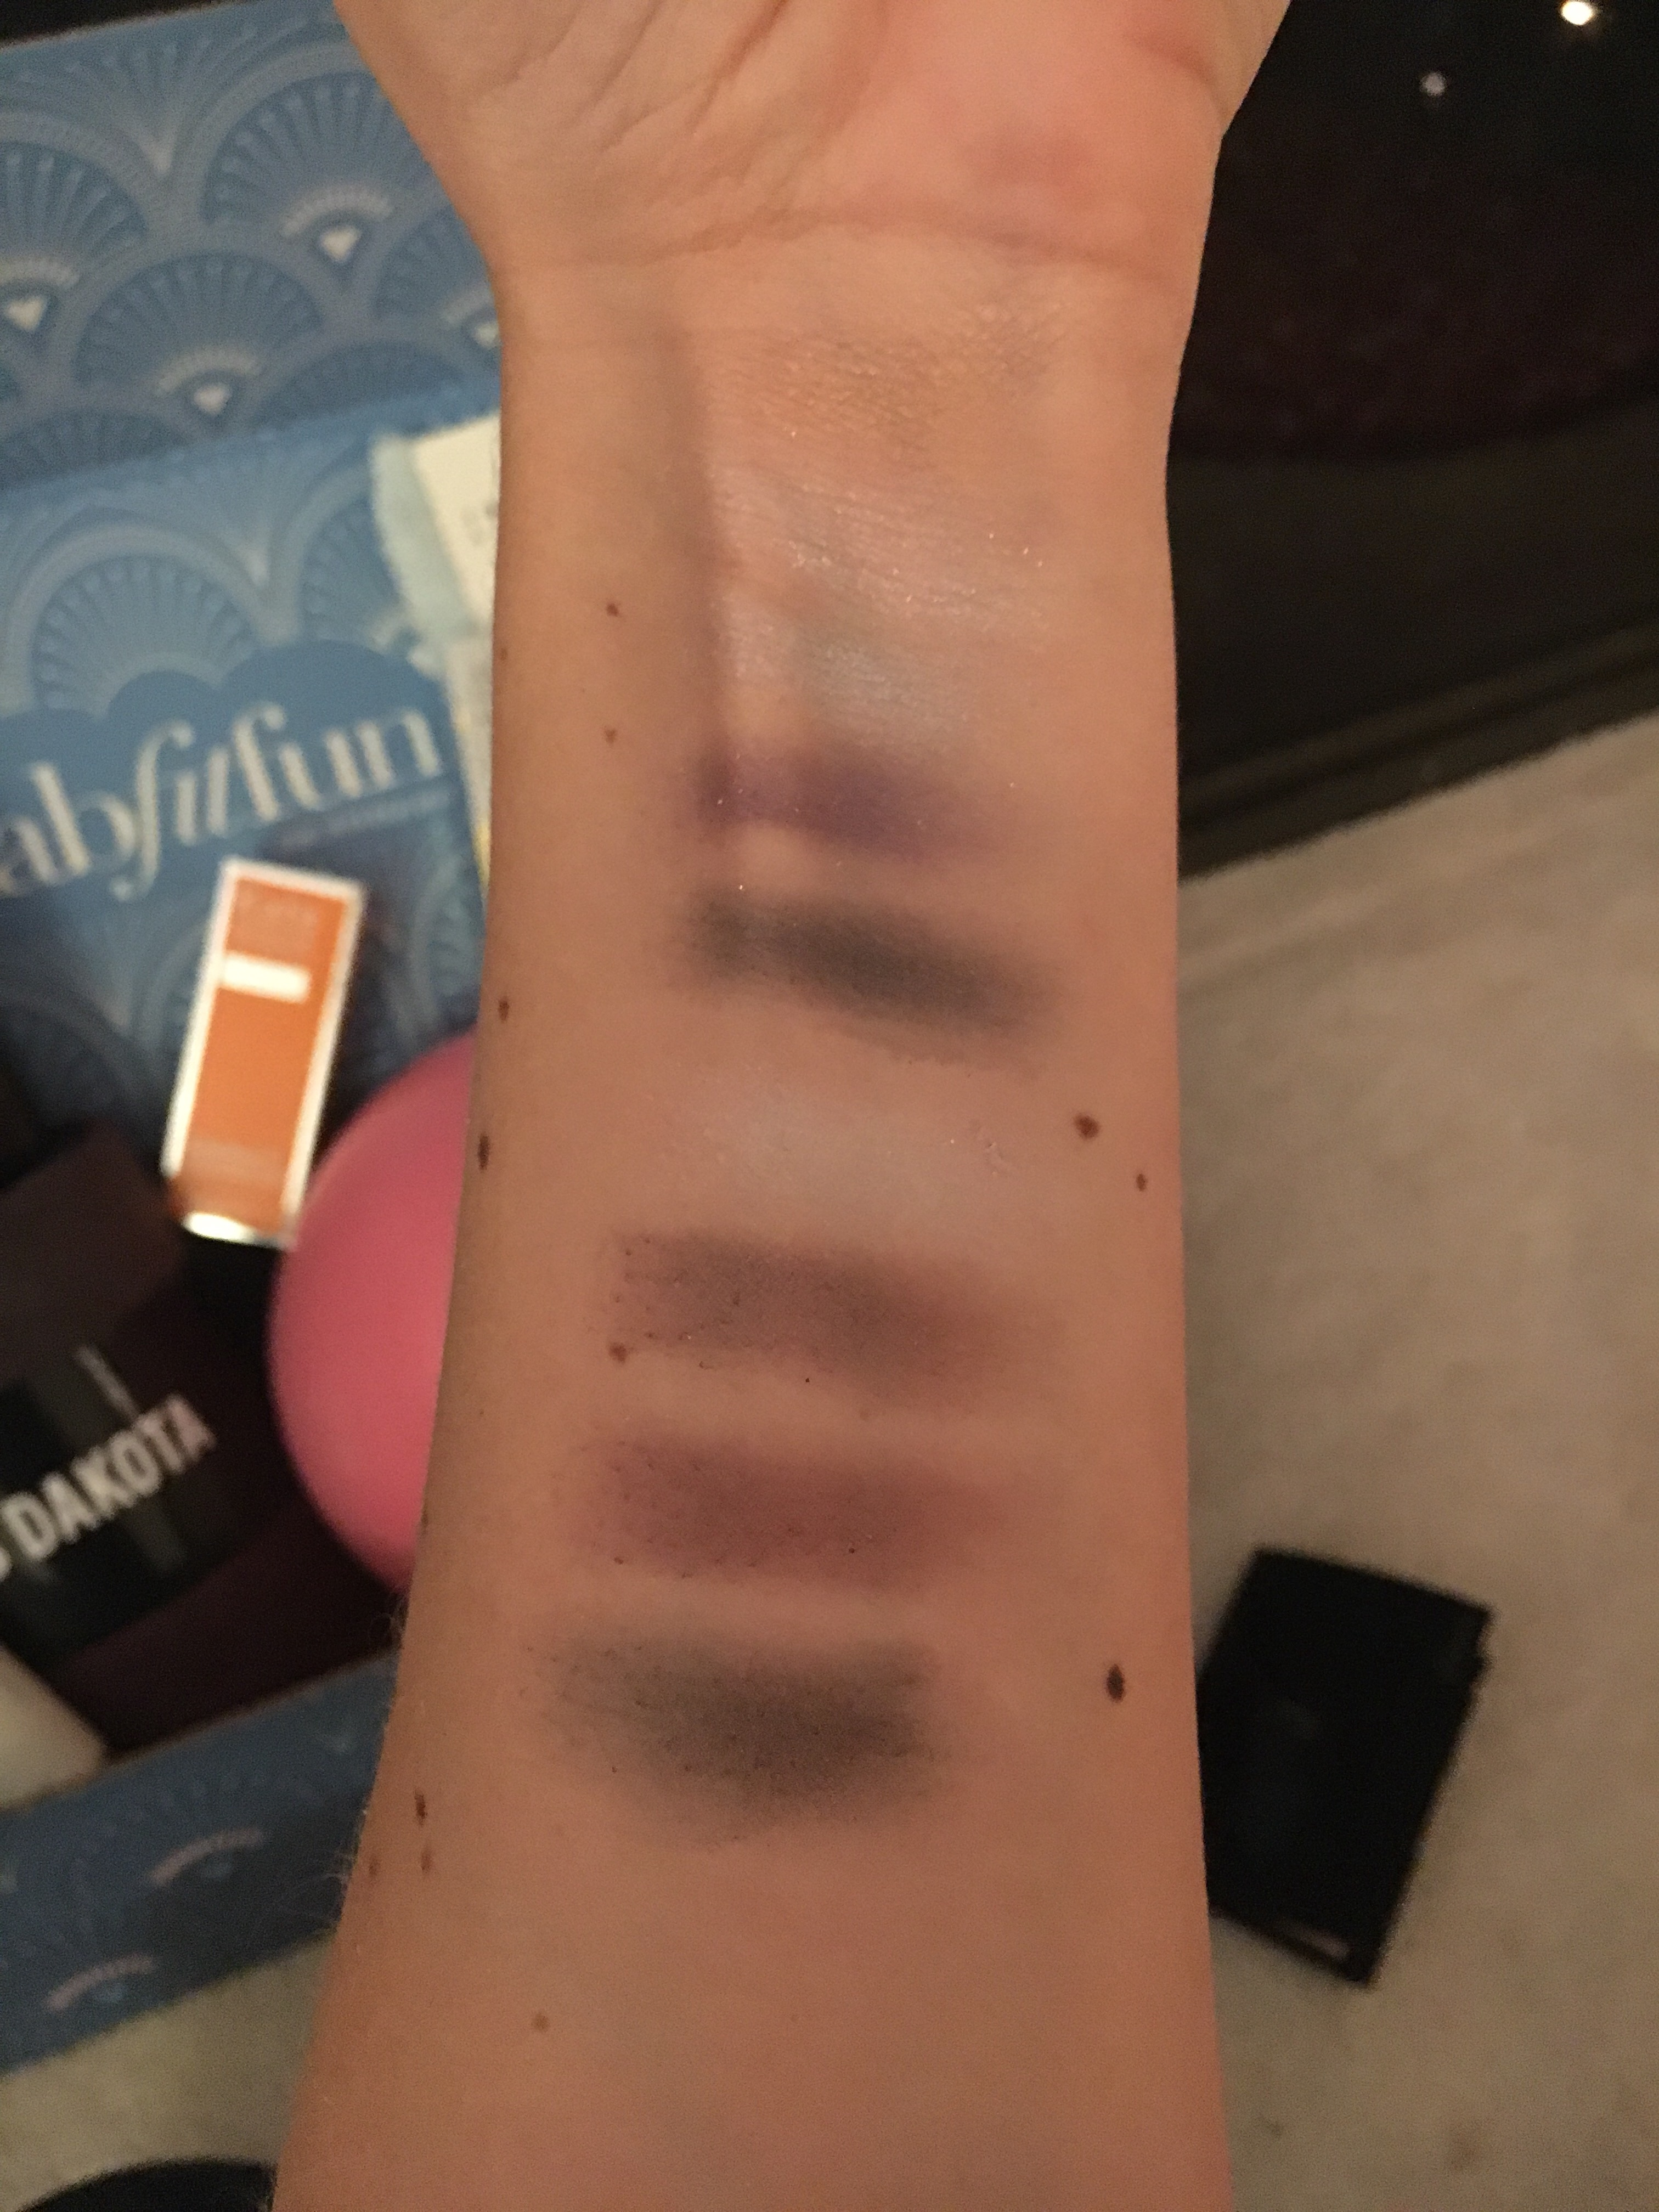 Here are color swatches for the Doucce palette. The top color on my arm is the shimmery highlight pan. The eight eyeshadows are underneath.